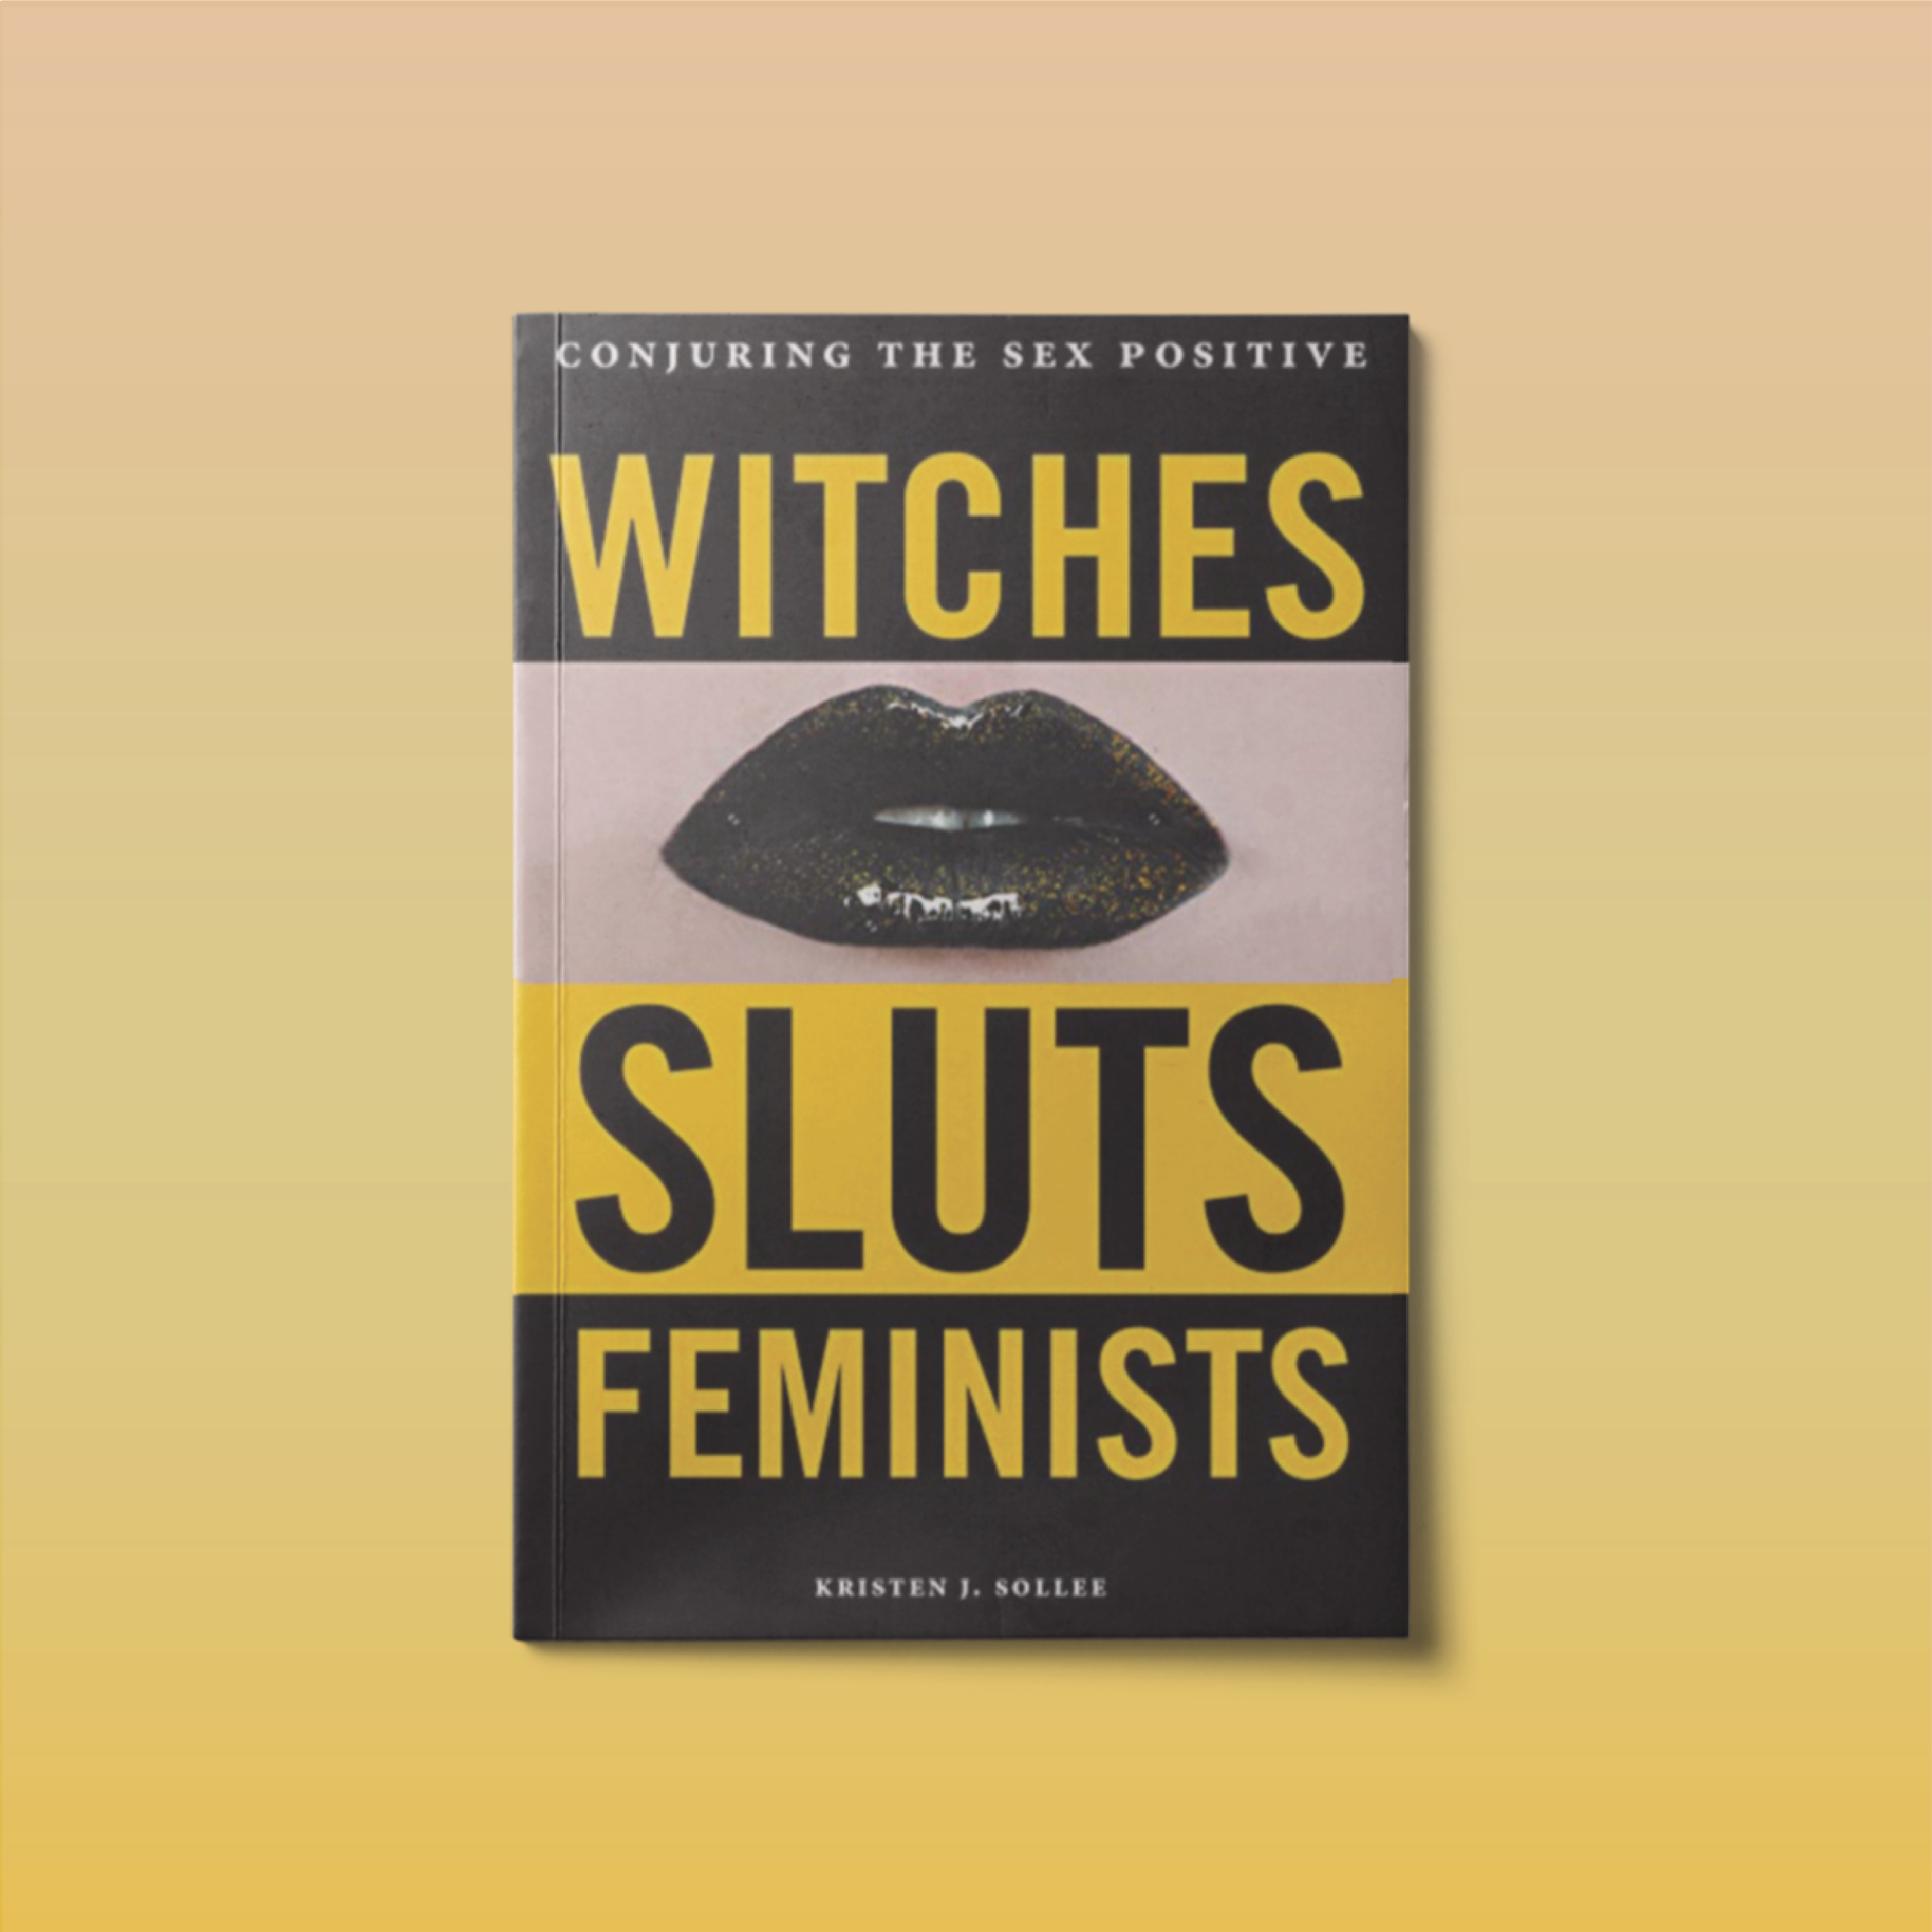 October Book Club: Witches, Sluts, Feminists